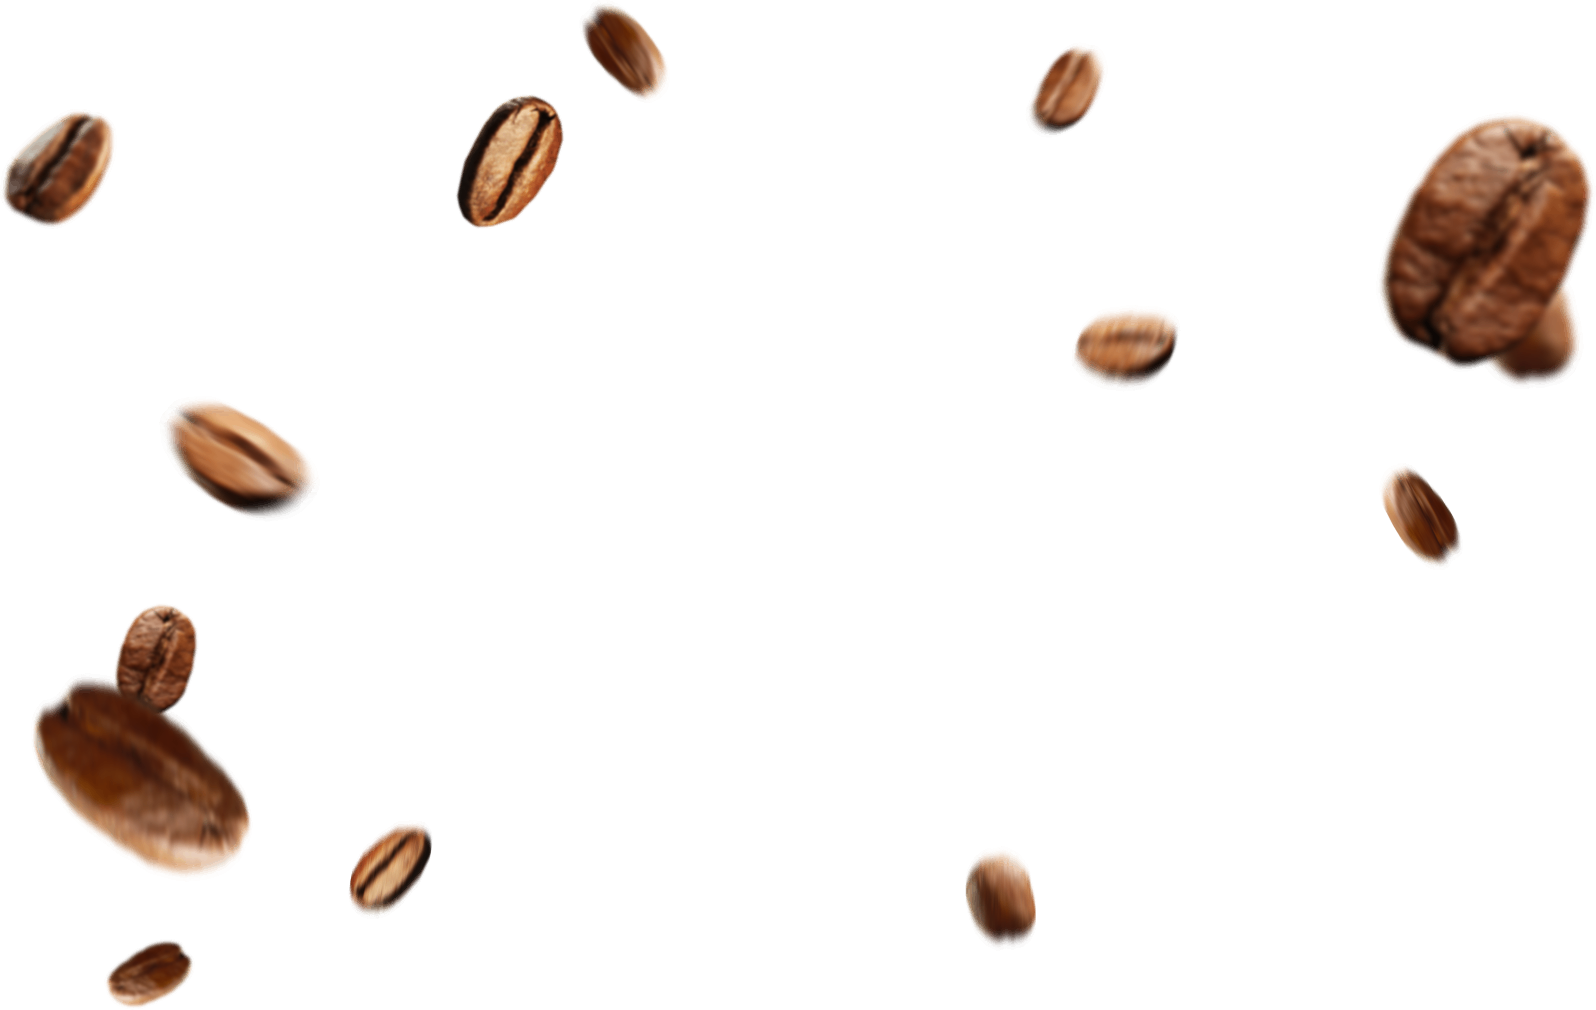 Png coffee beans. Transparent images pluspng image